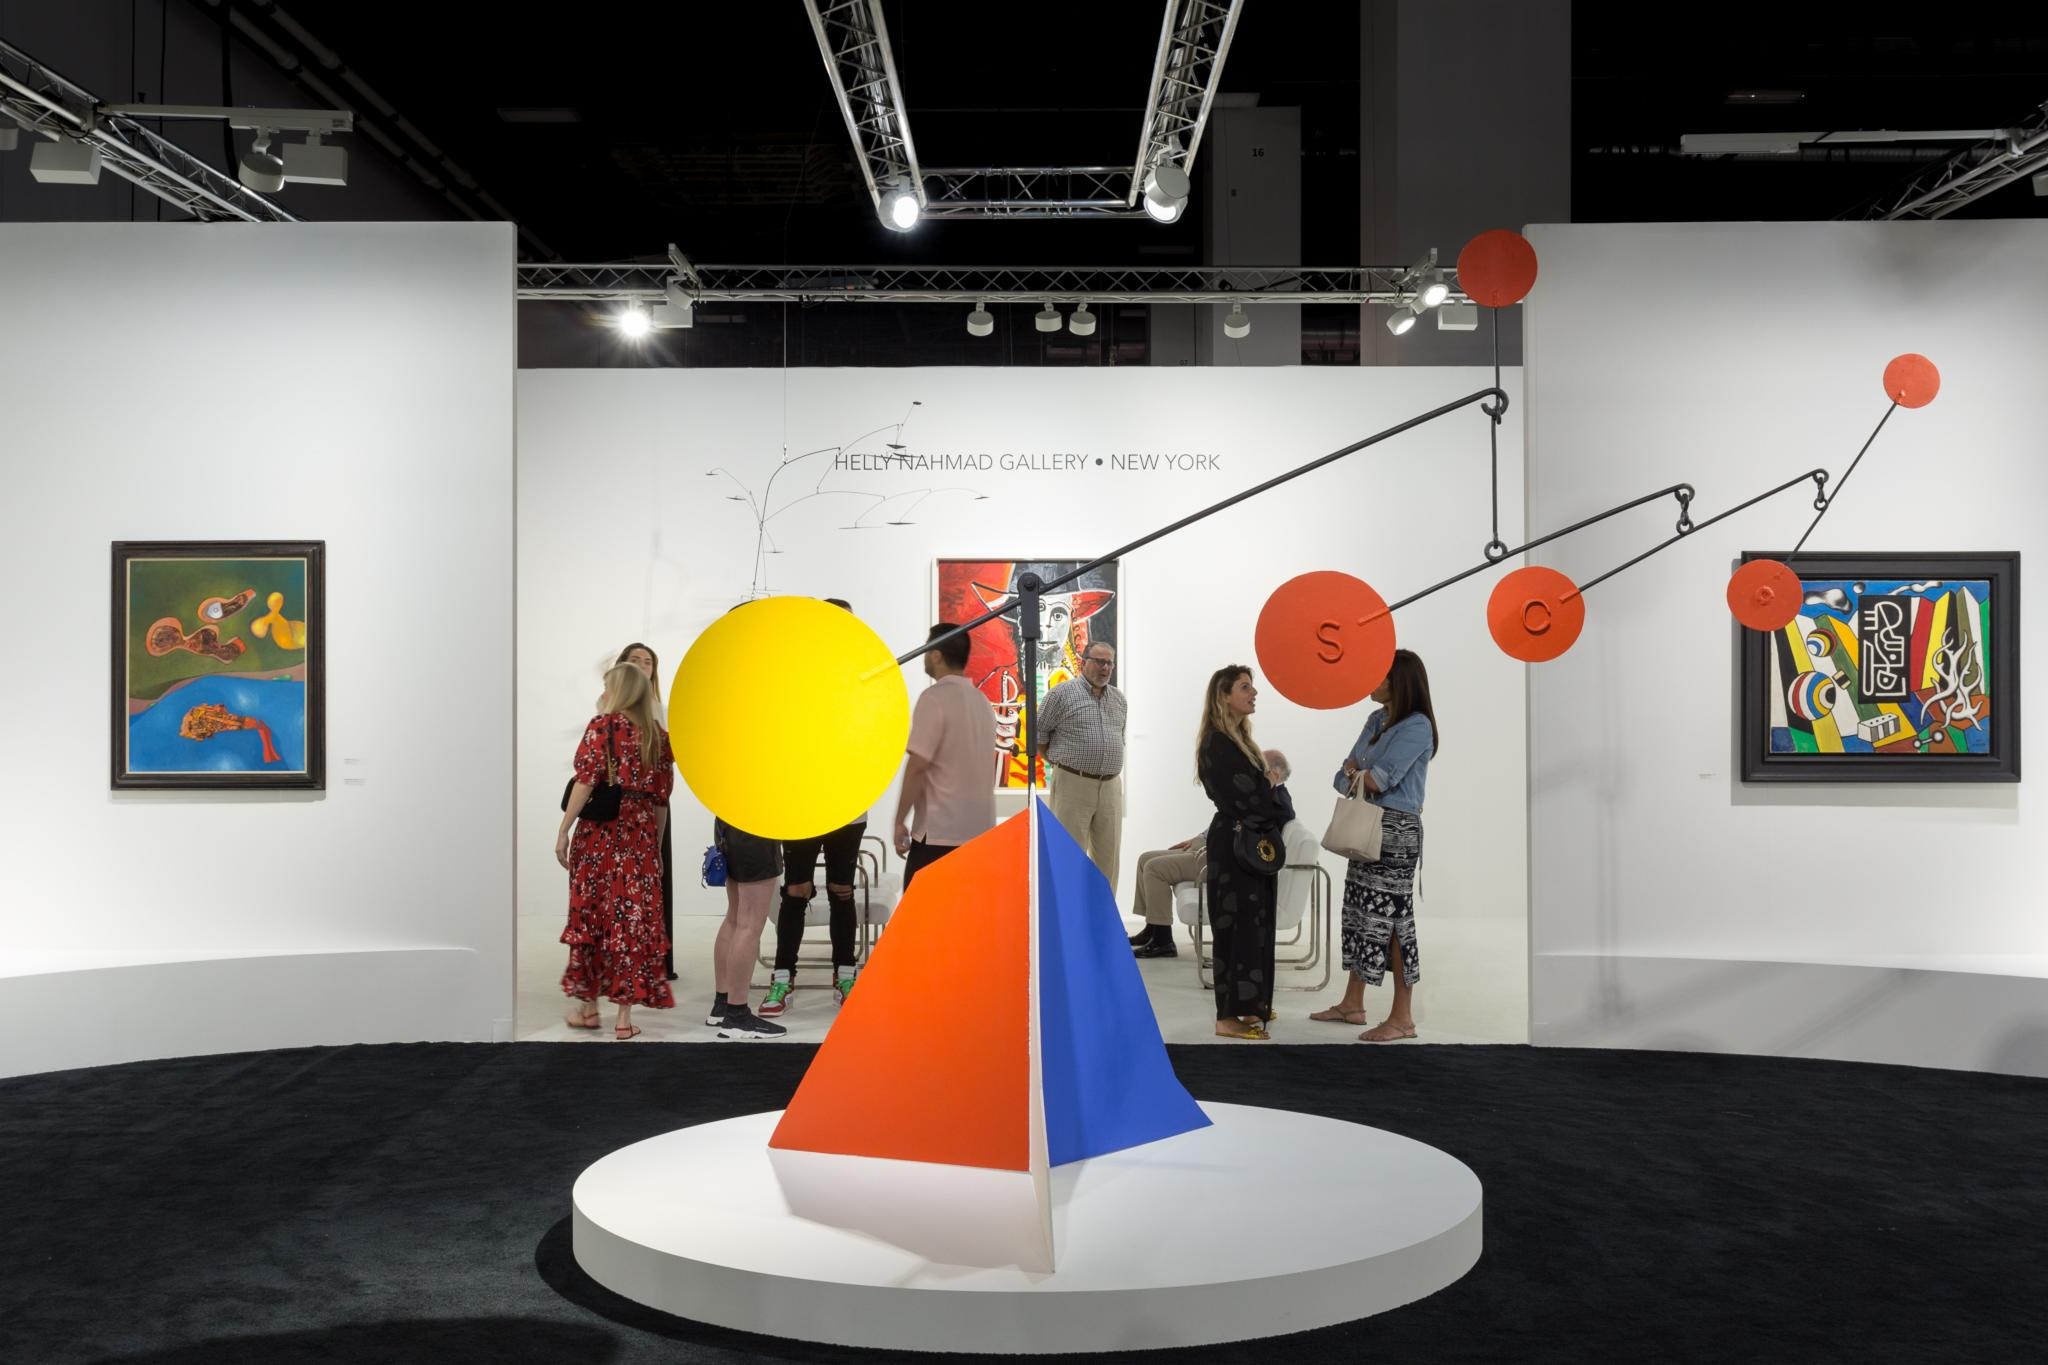 The 15 Best Booths at Art Basel in Miami Beach Gallery Q on gallery v, gallery r, gallery m, gallery d, gallery k, gallery c, gallery b,